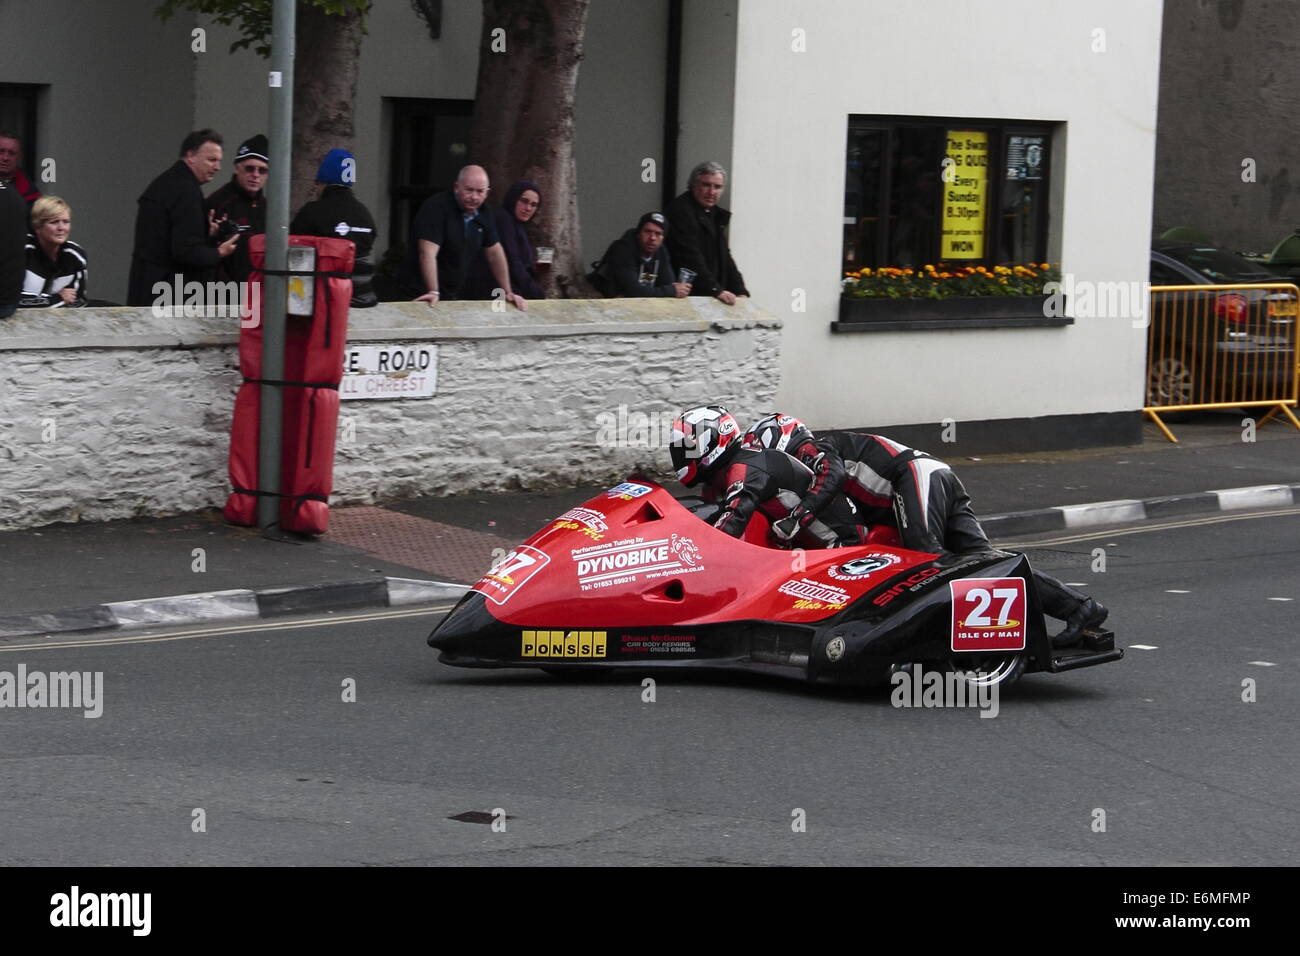 Racing Sidecar Outfit High Resolution Stock Photography And Images Alamy